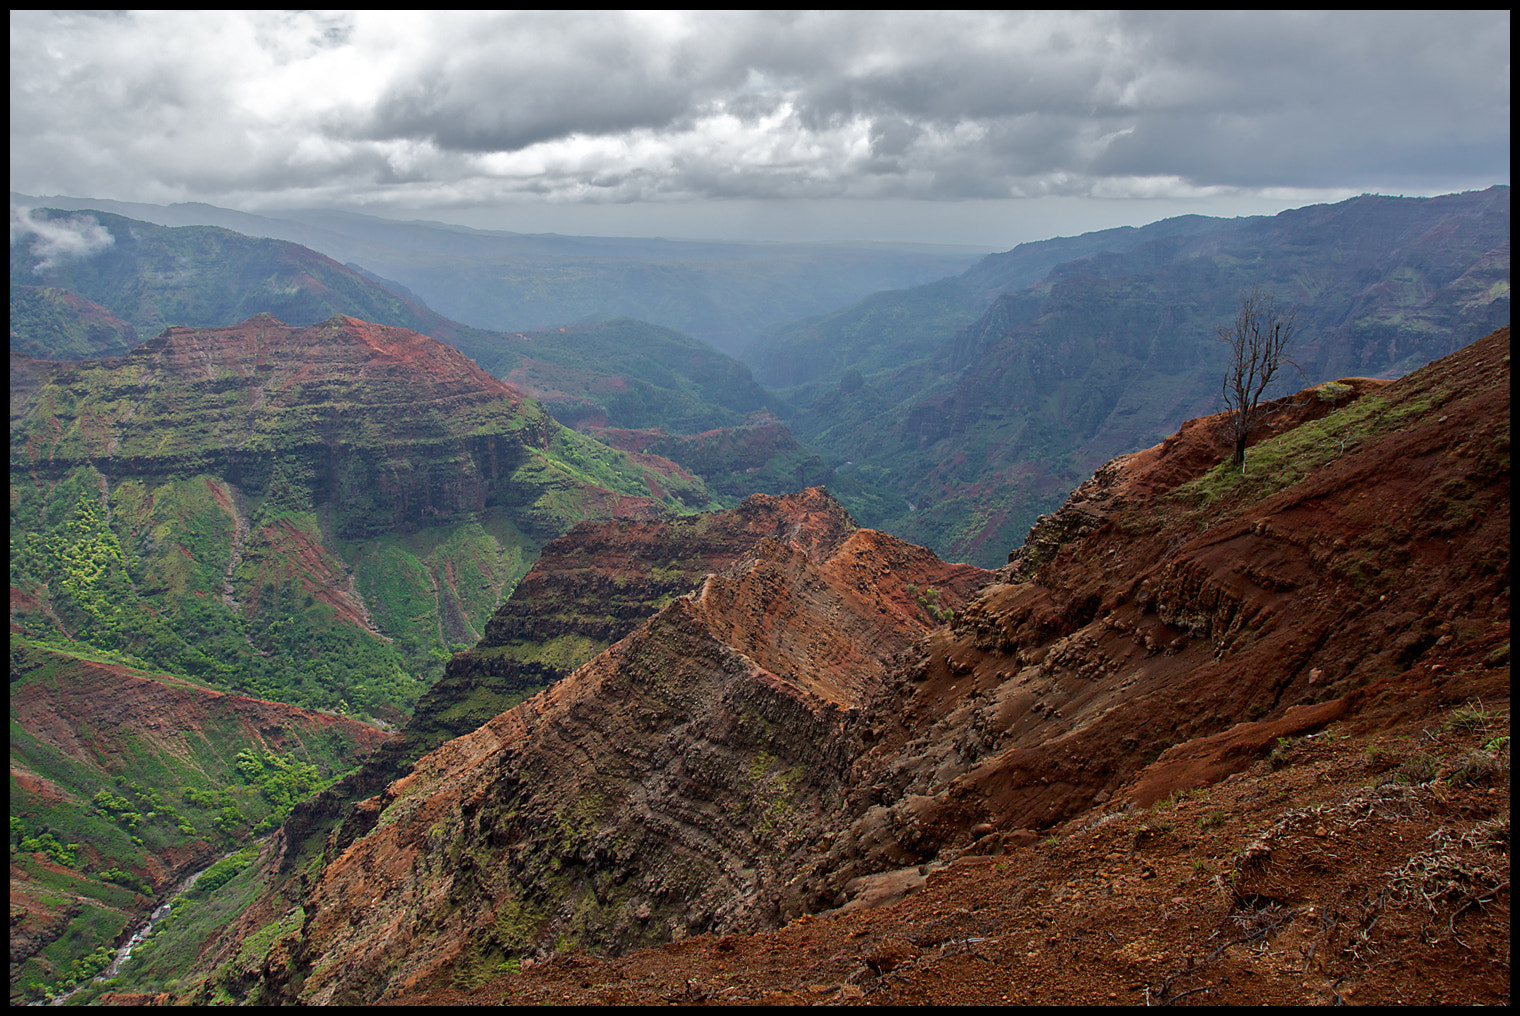 Photograph Canyon Trail, Kauai by vovamir on 500px